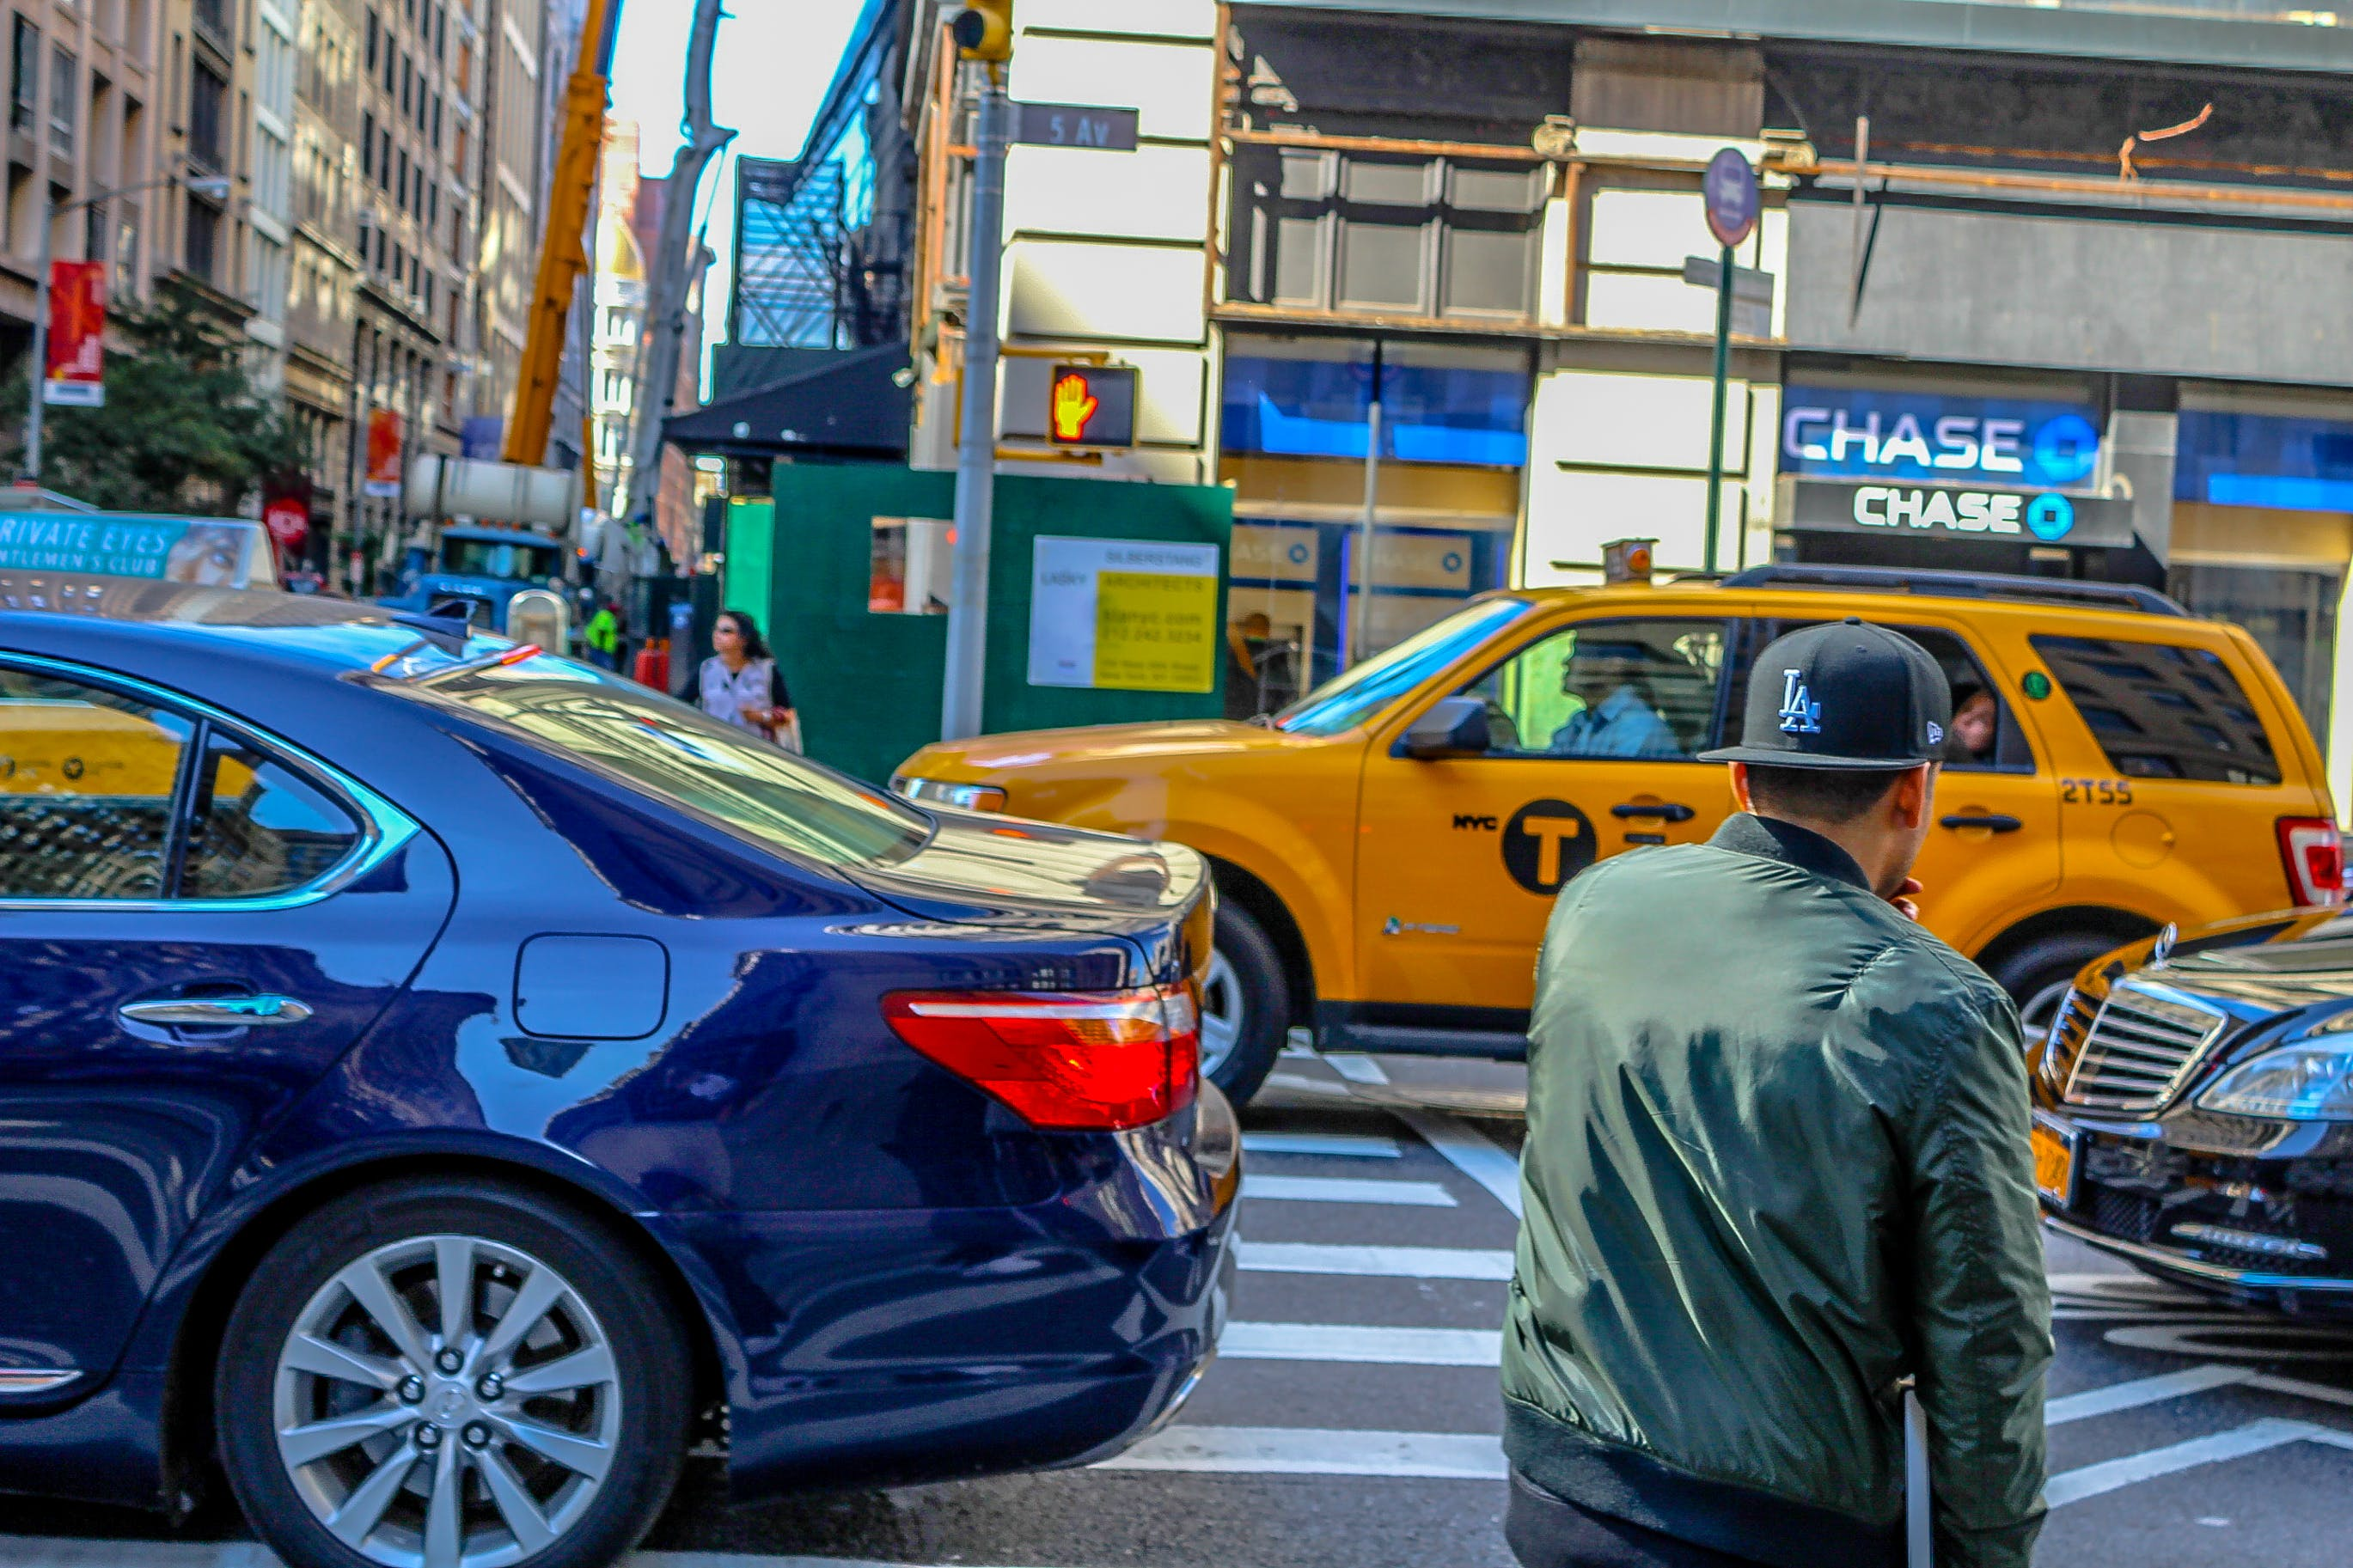 Man in Green Jacket Attempting to Cross on Pedestrian Lane With Vehicles Passing